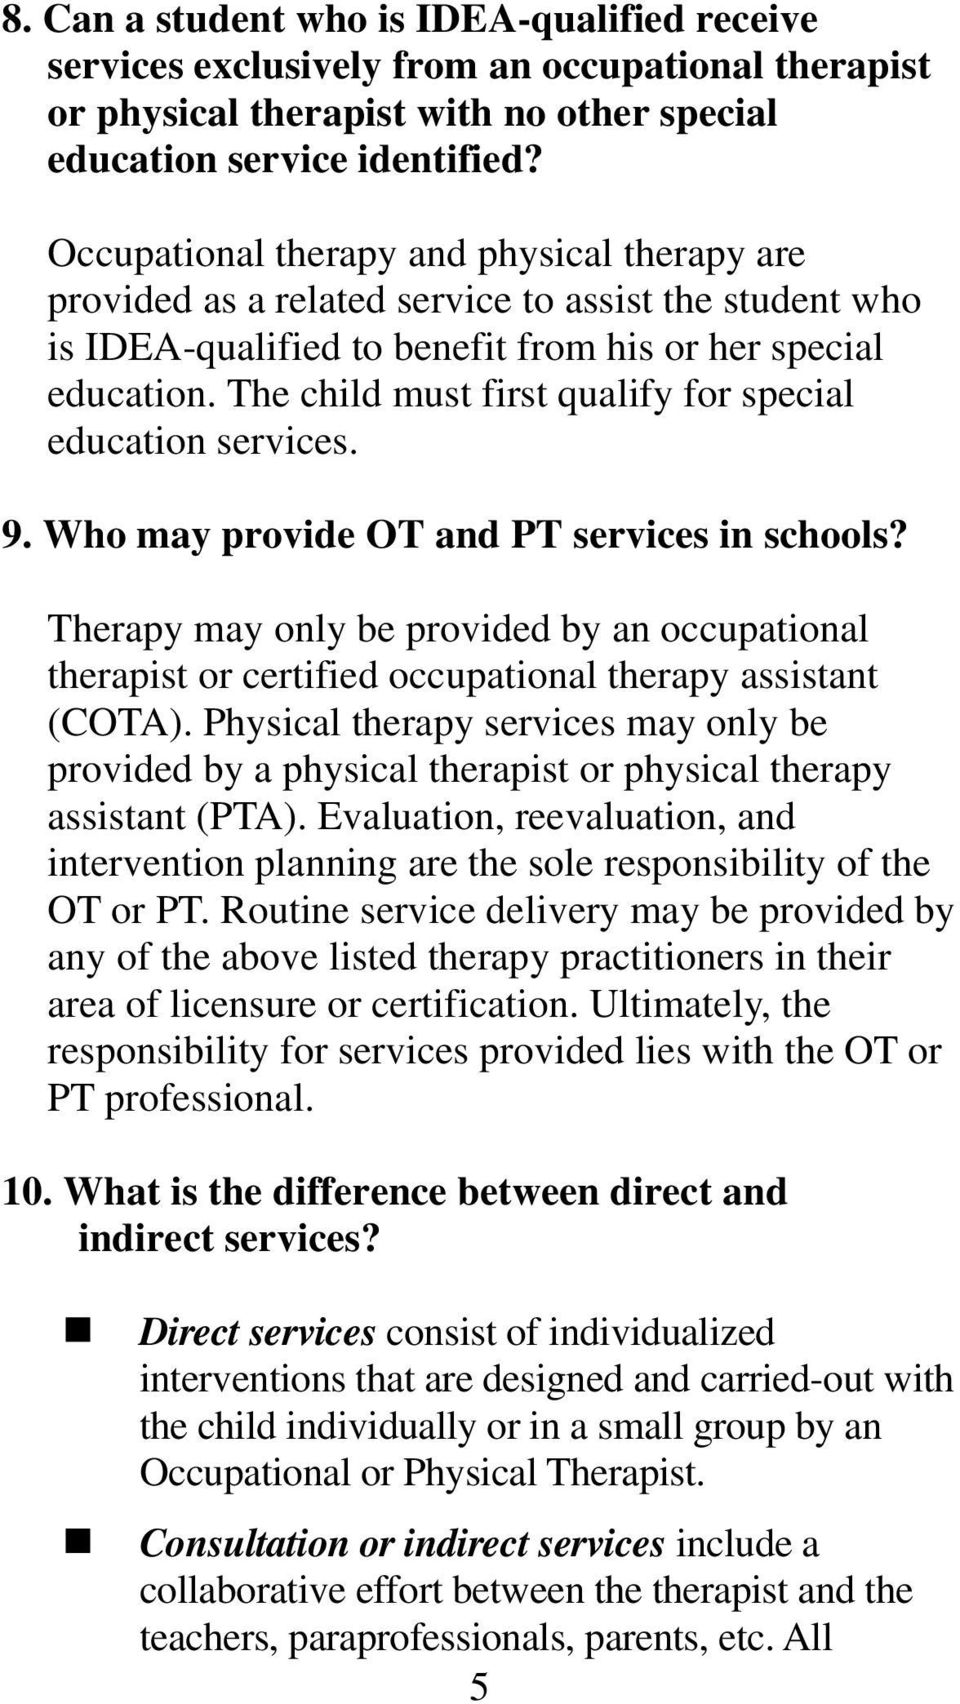 The child must first qualify for special education services. 9. Who may provide OT and PT services in schools?